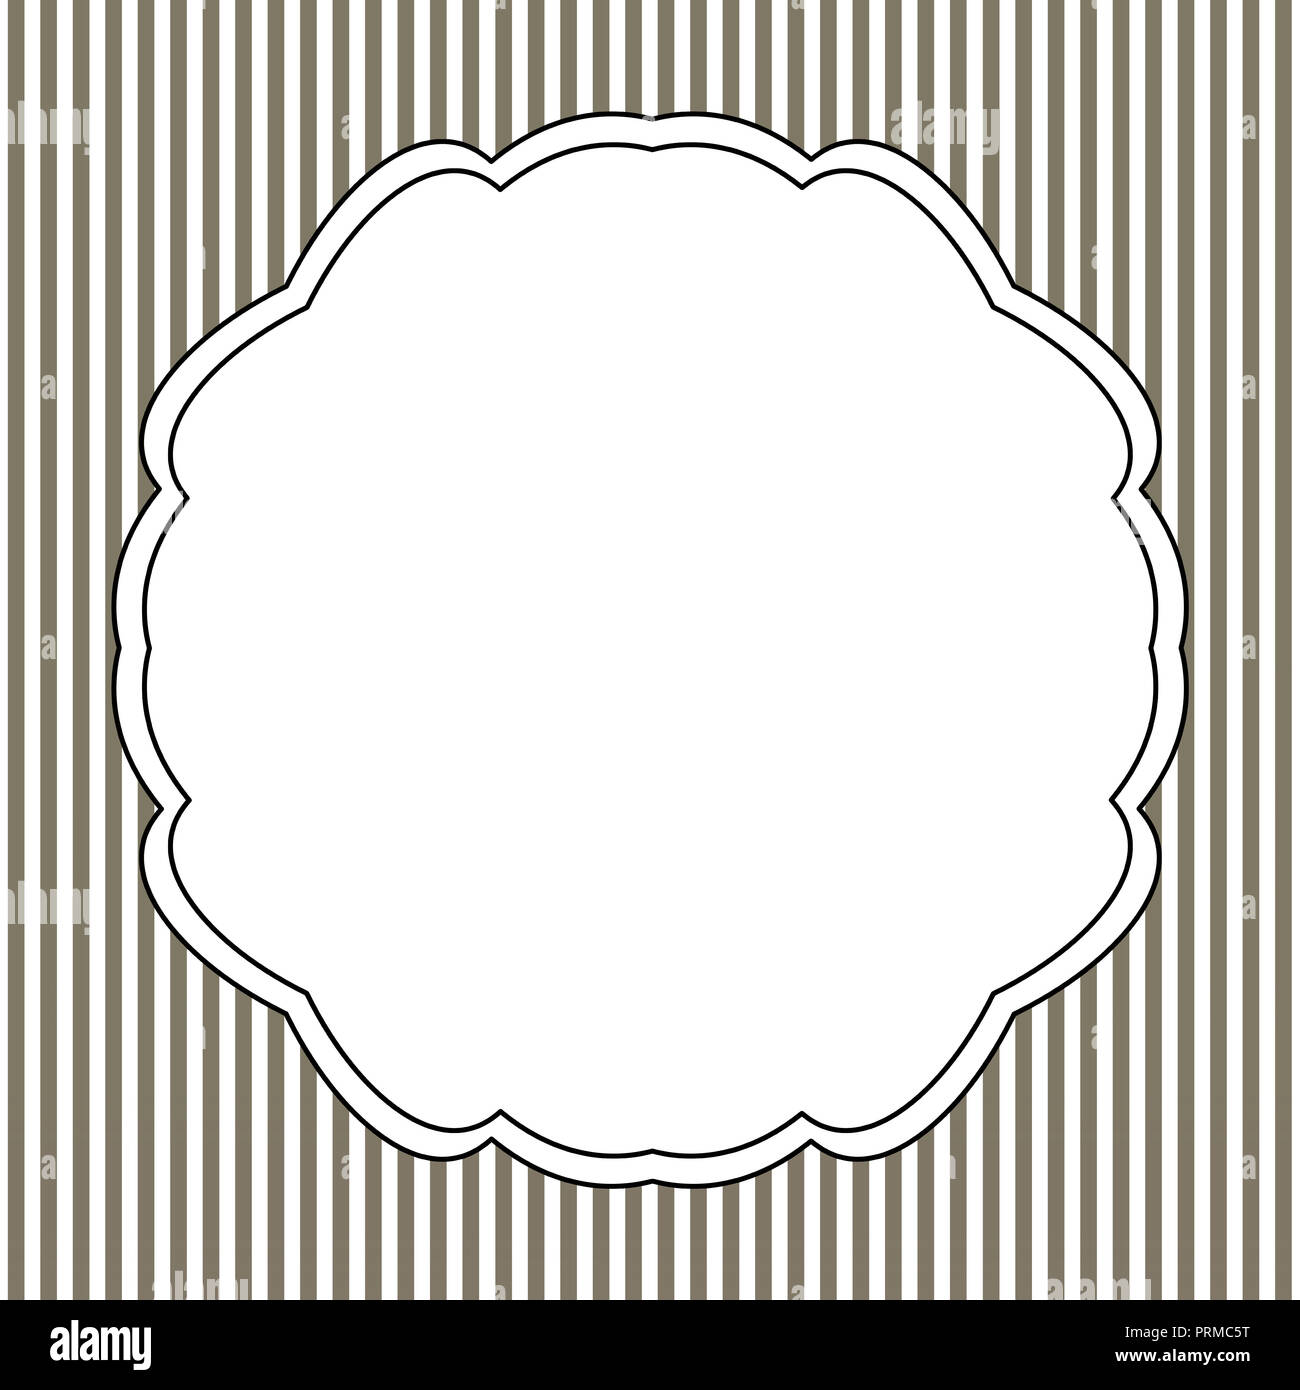 Vintage White Frame With Black Border On A Striped Background Stock